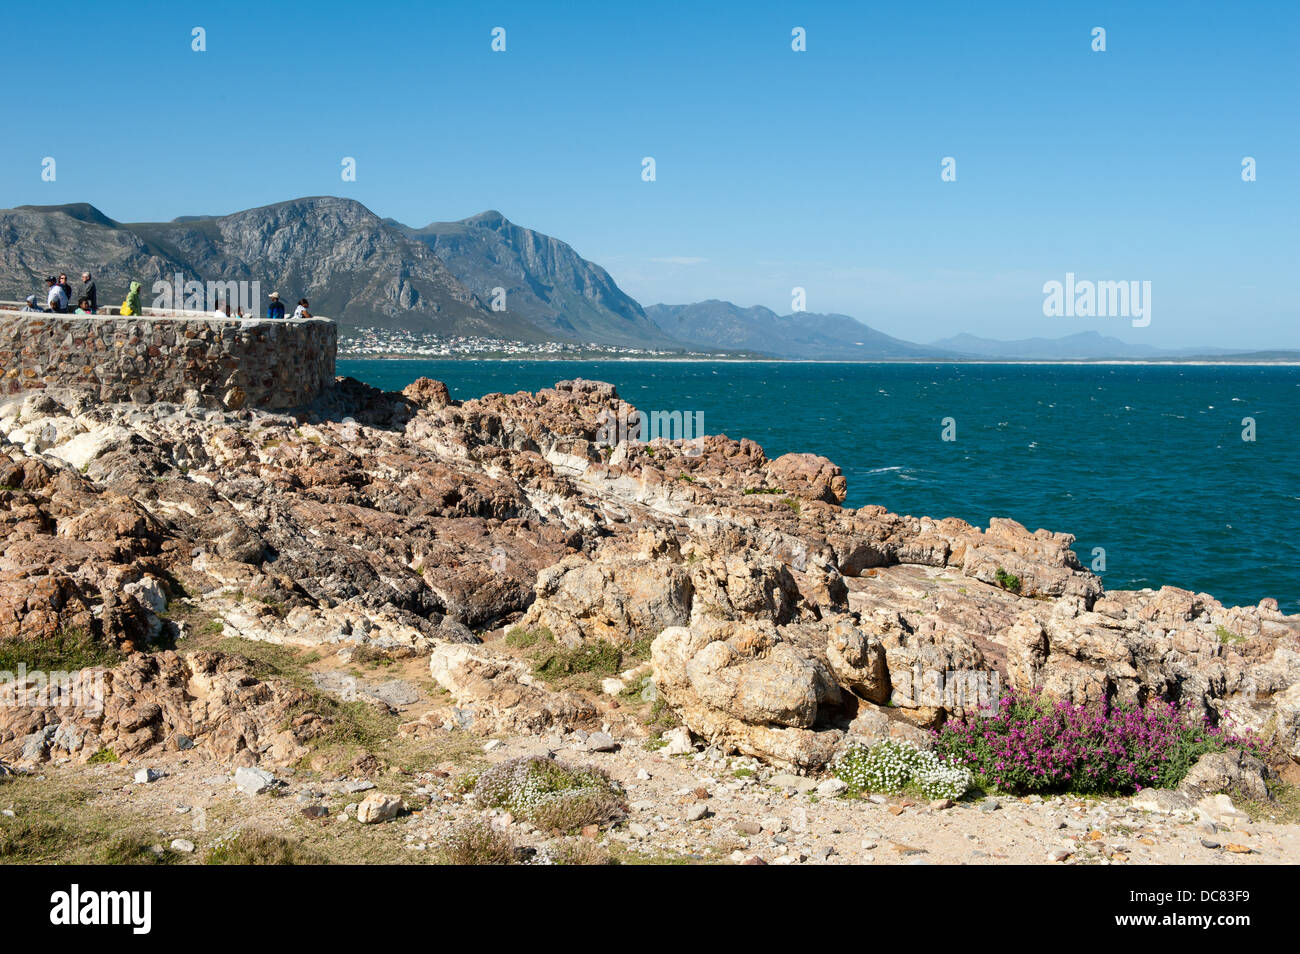 People at the whale watching viewpoint at the old harbour, Hermanus, Western Cape, South Africa - Stock Image